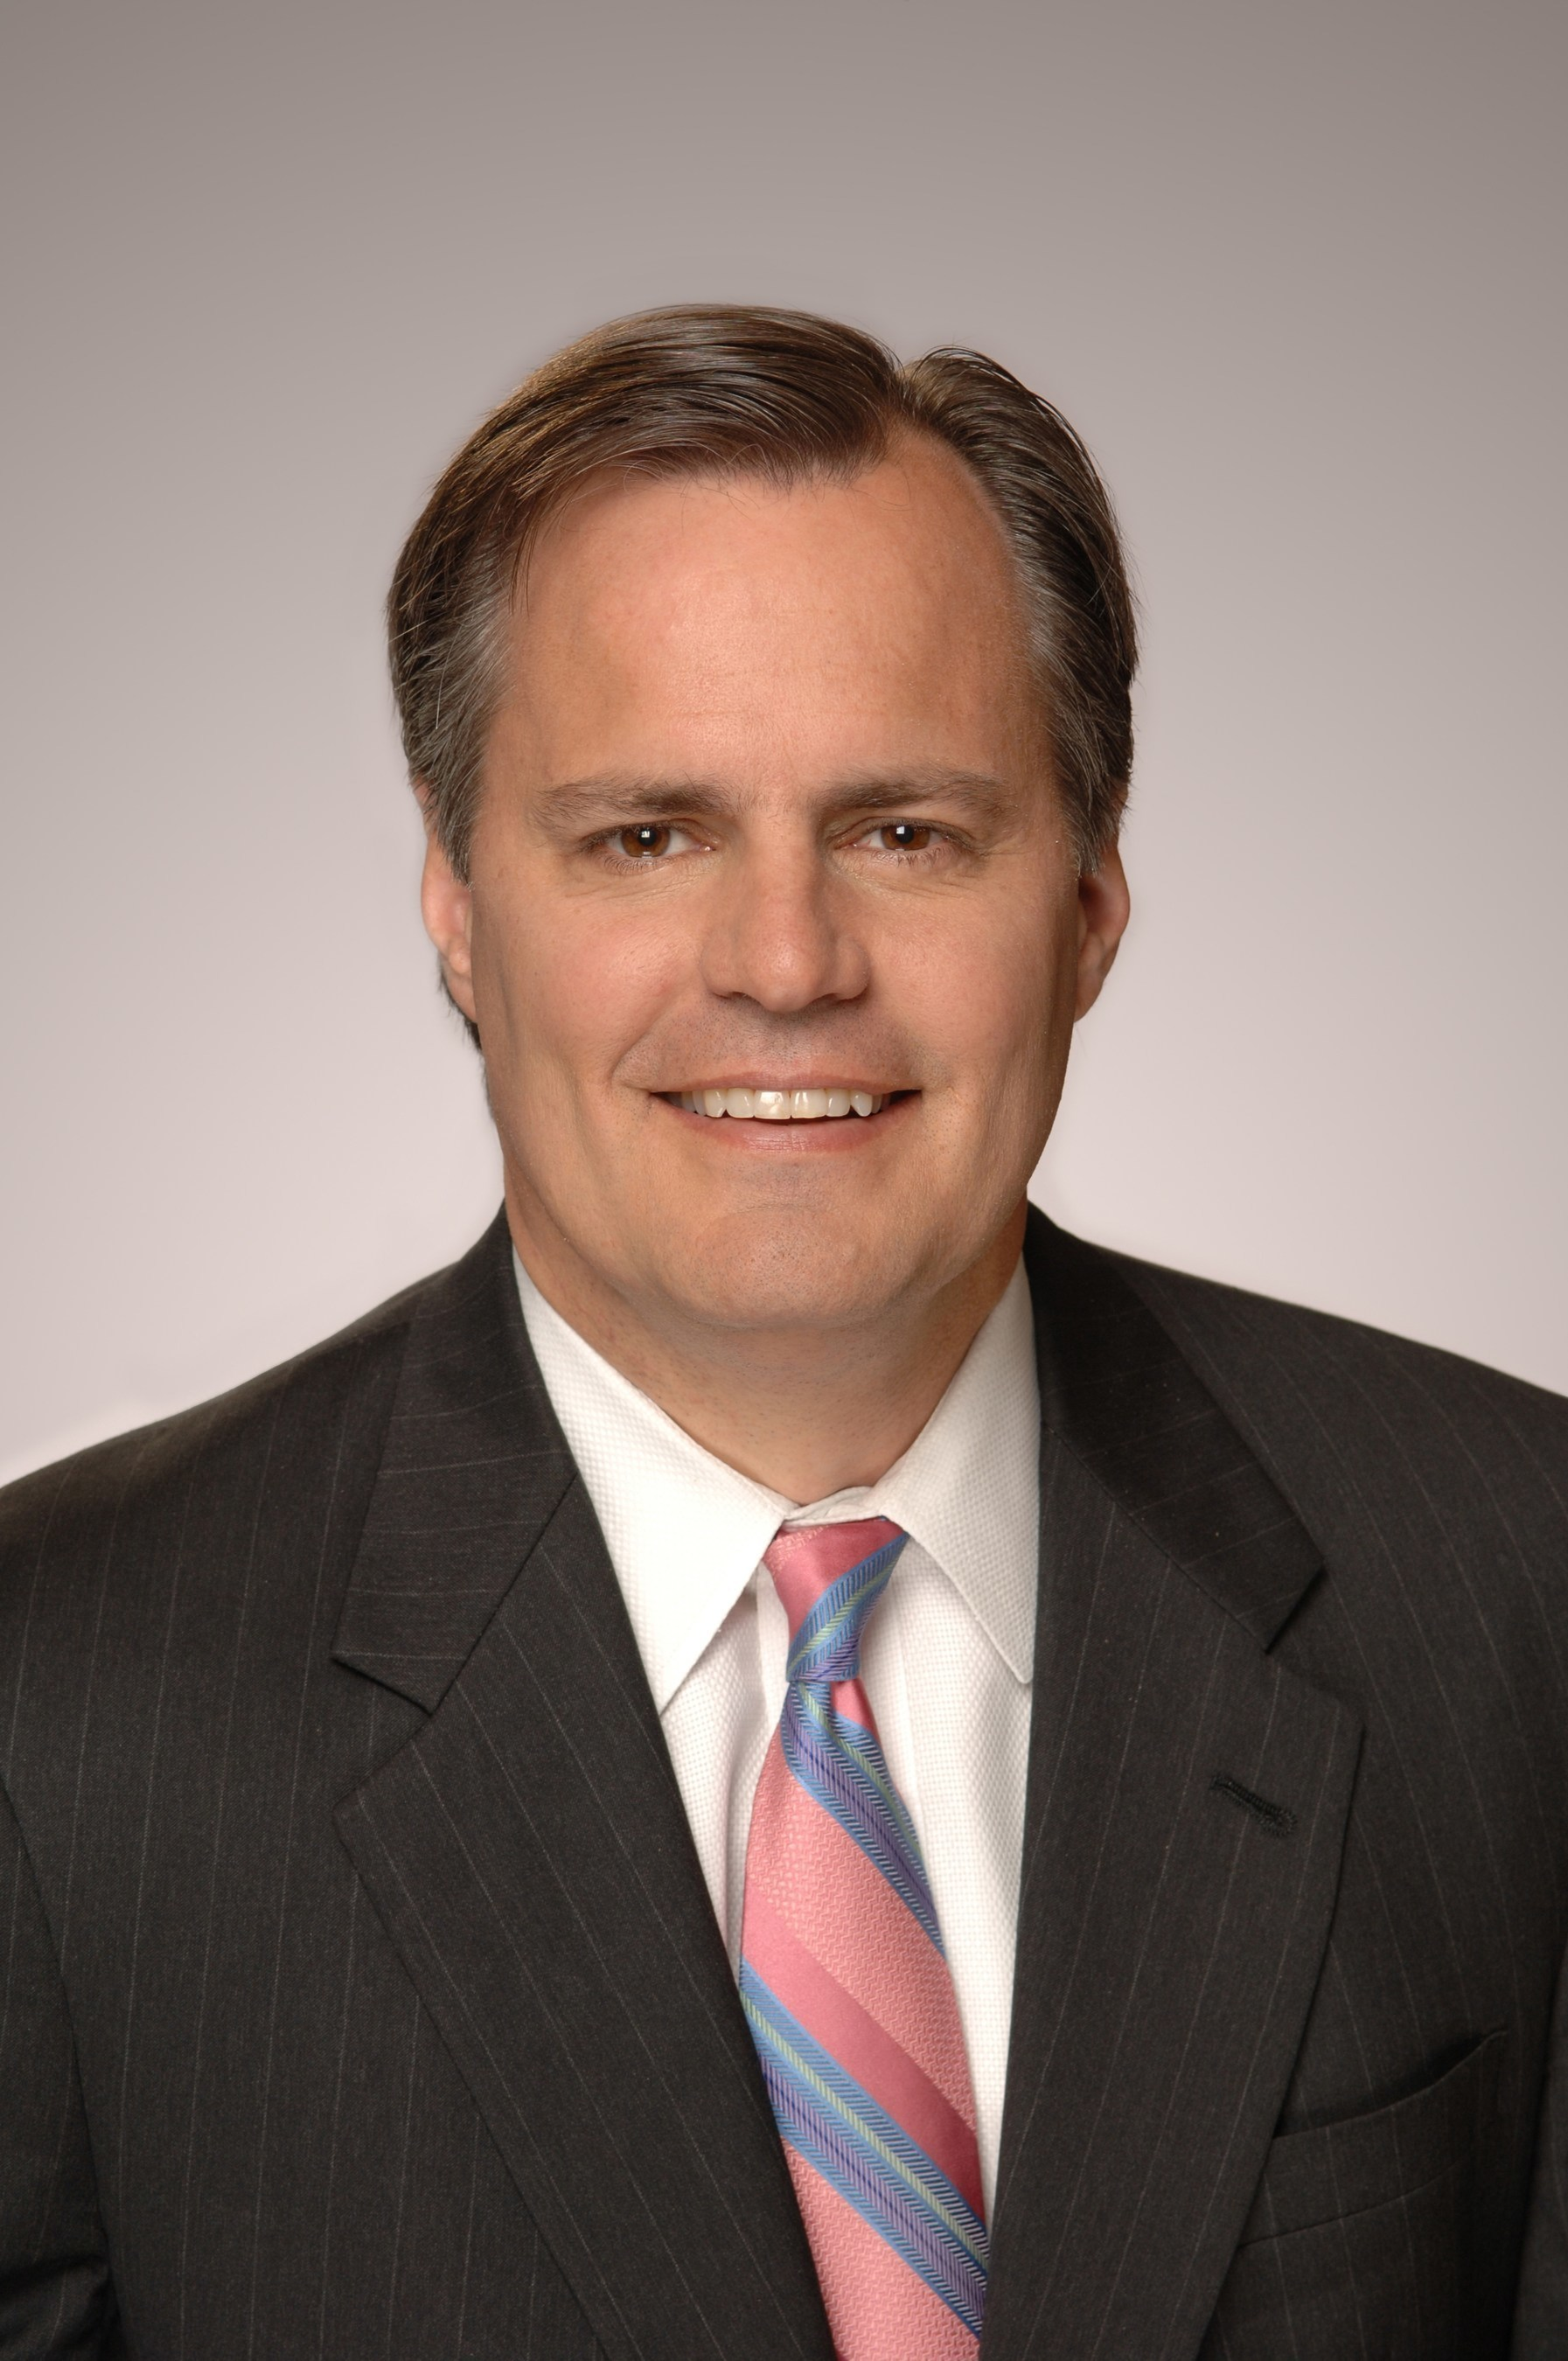 David B. Holl, President and CEO of Mary Kay Inc. and Chairman of the Board of Direct Selling Association (DSA)